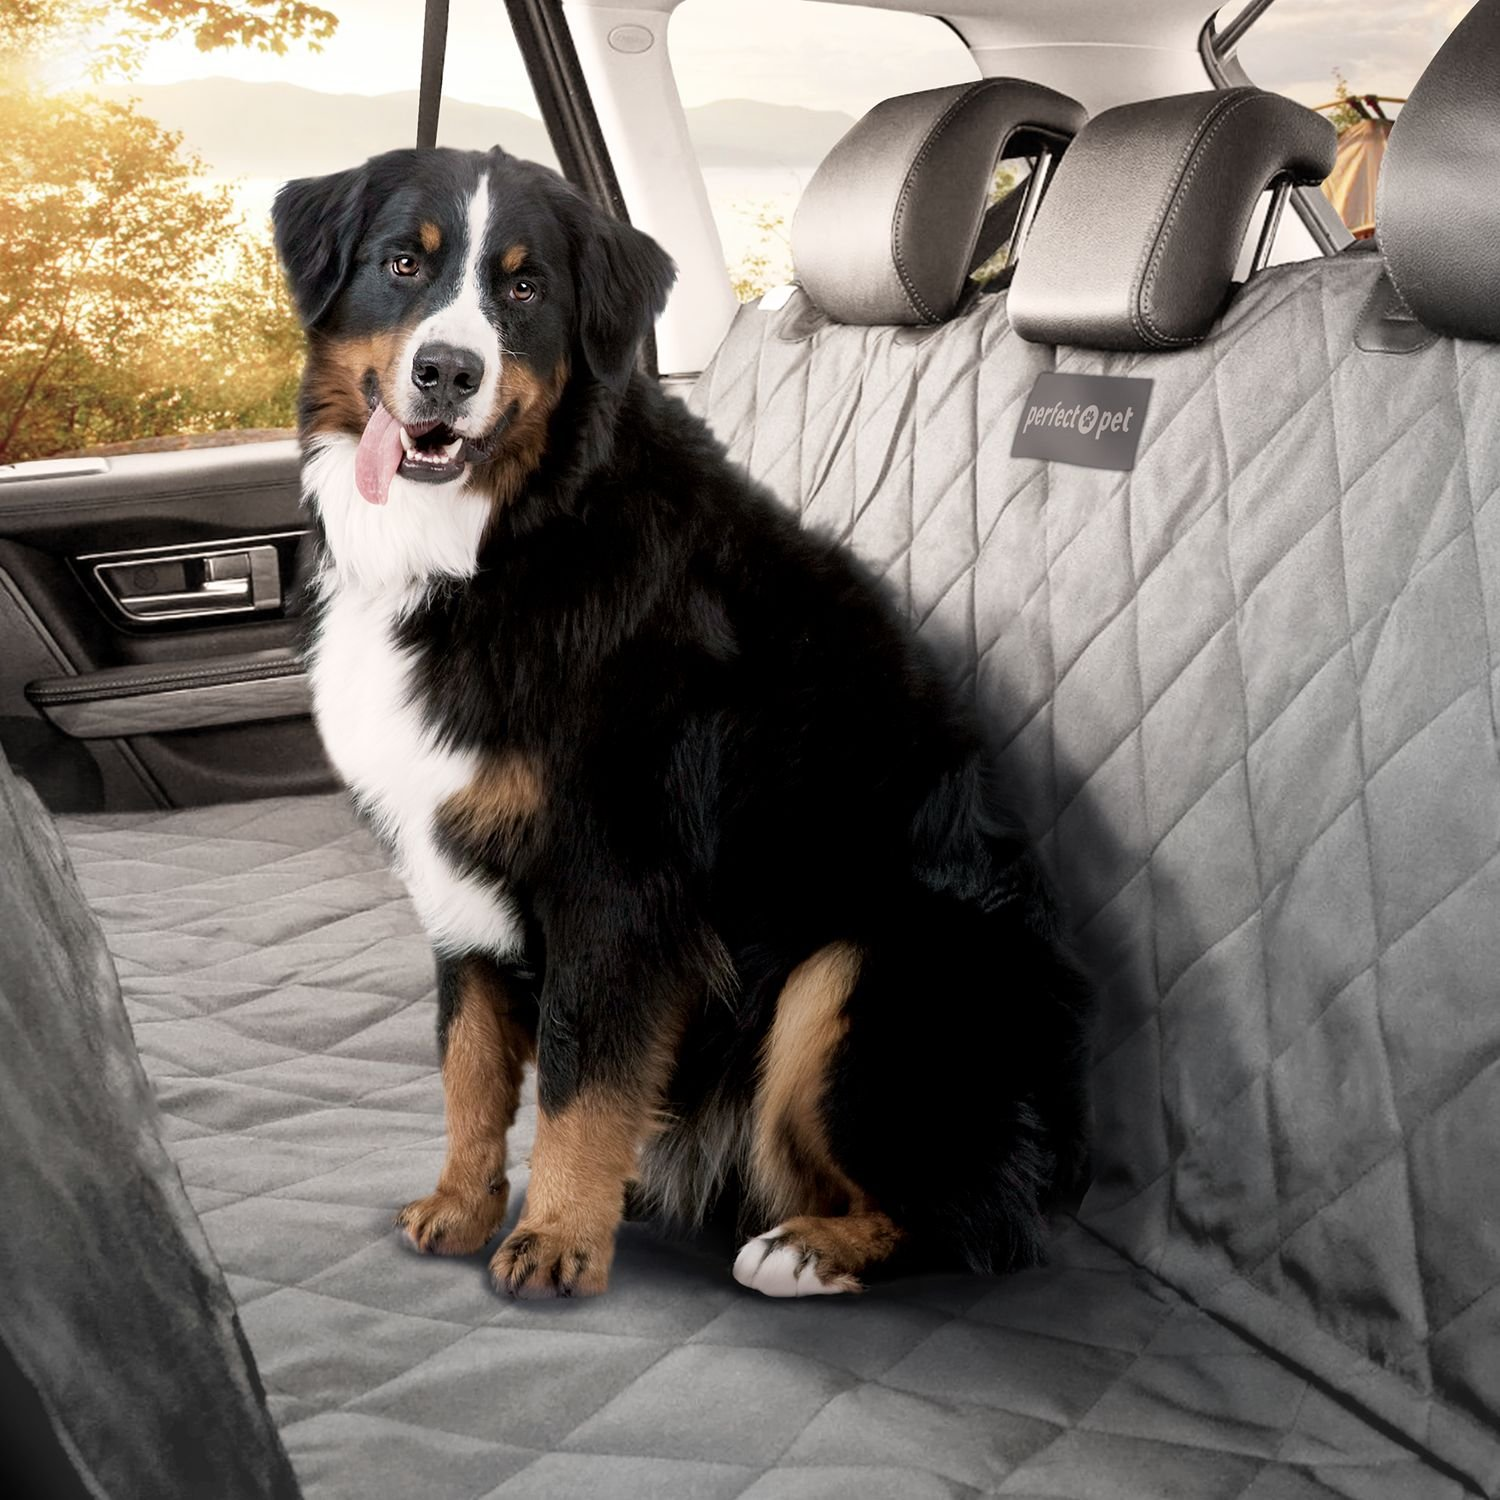 Medium image of amazon     perfect pet seat cover   dog and cat car seat cover hammock   waterproof and machine washable   non slip quilted technology to protect seats in